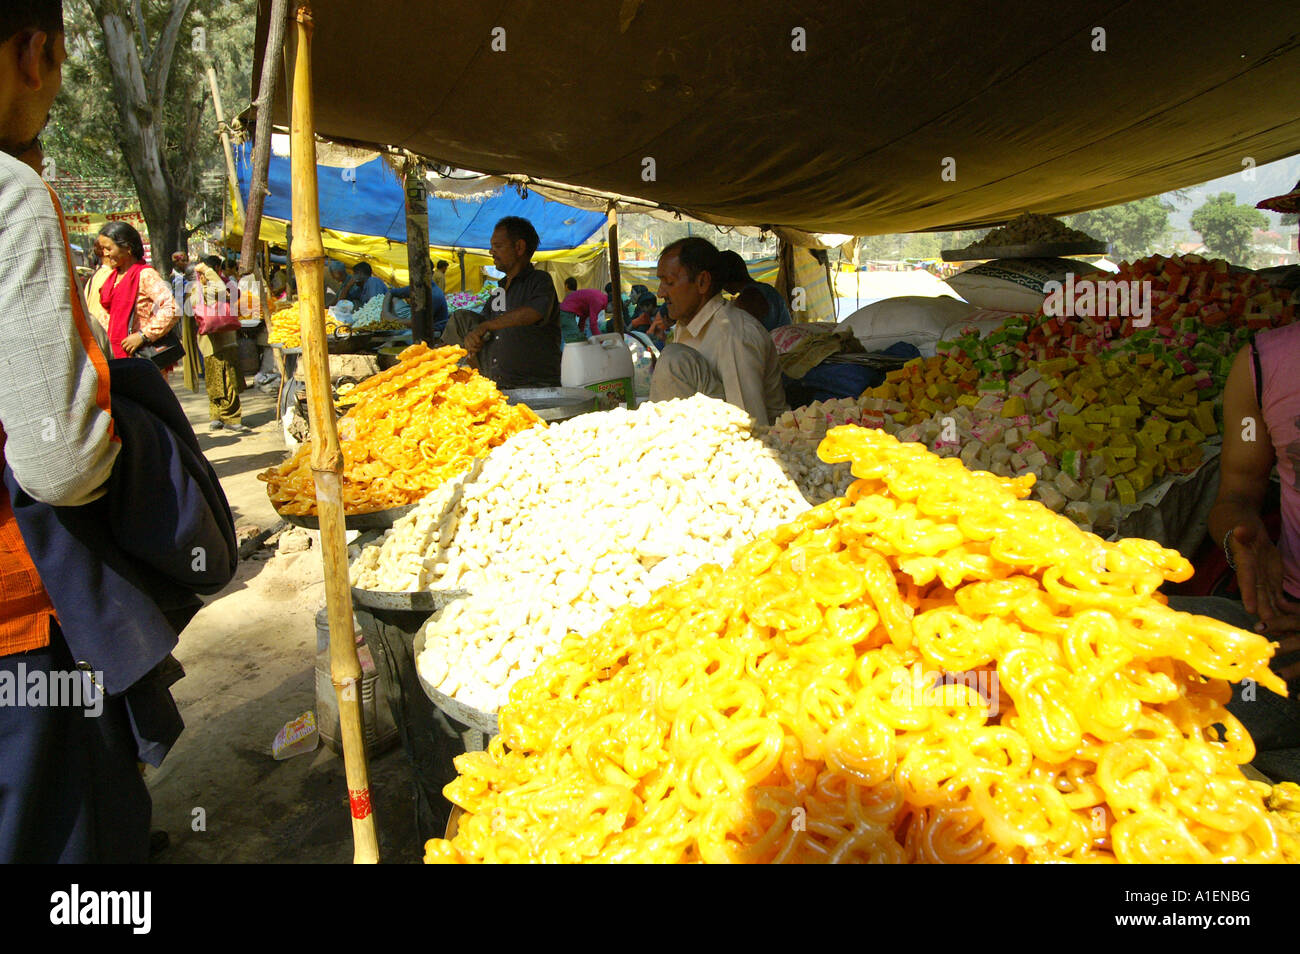 Stalls at Dussehra fair with enormous variety of rich Indian cuisine meals, Kullu, India - Stock Image